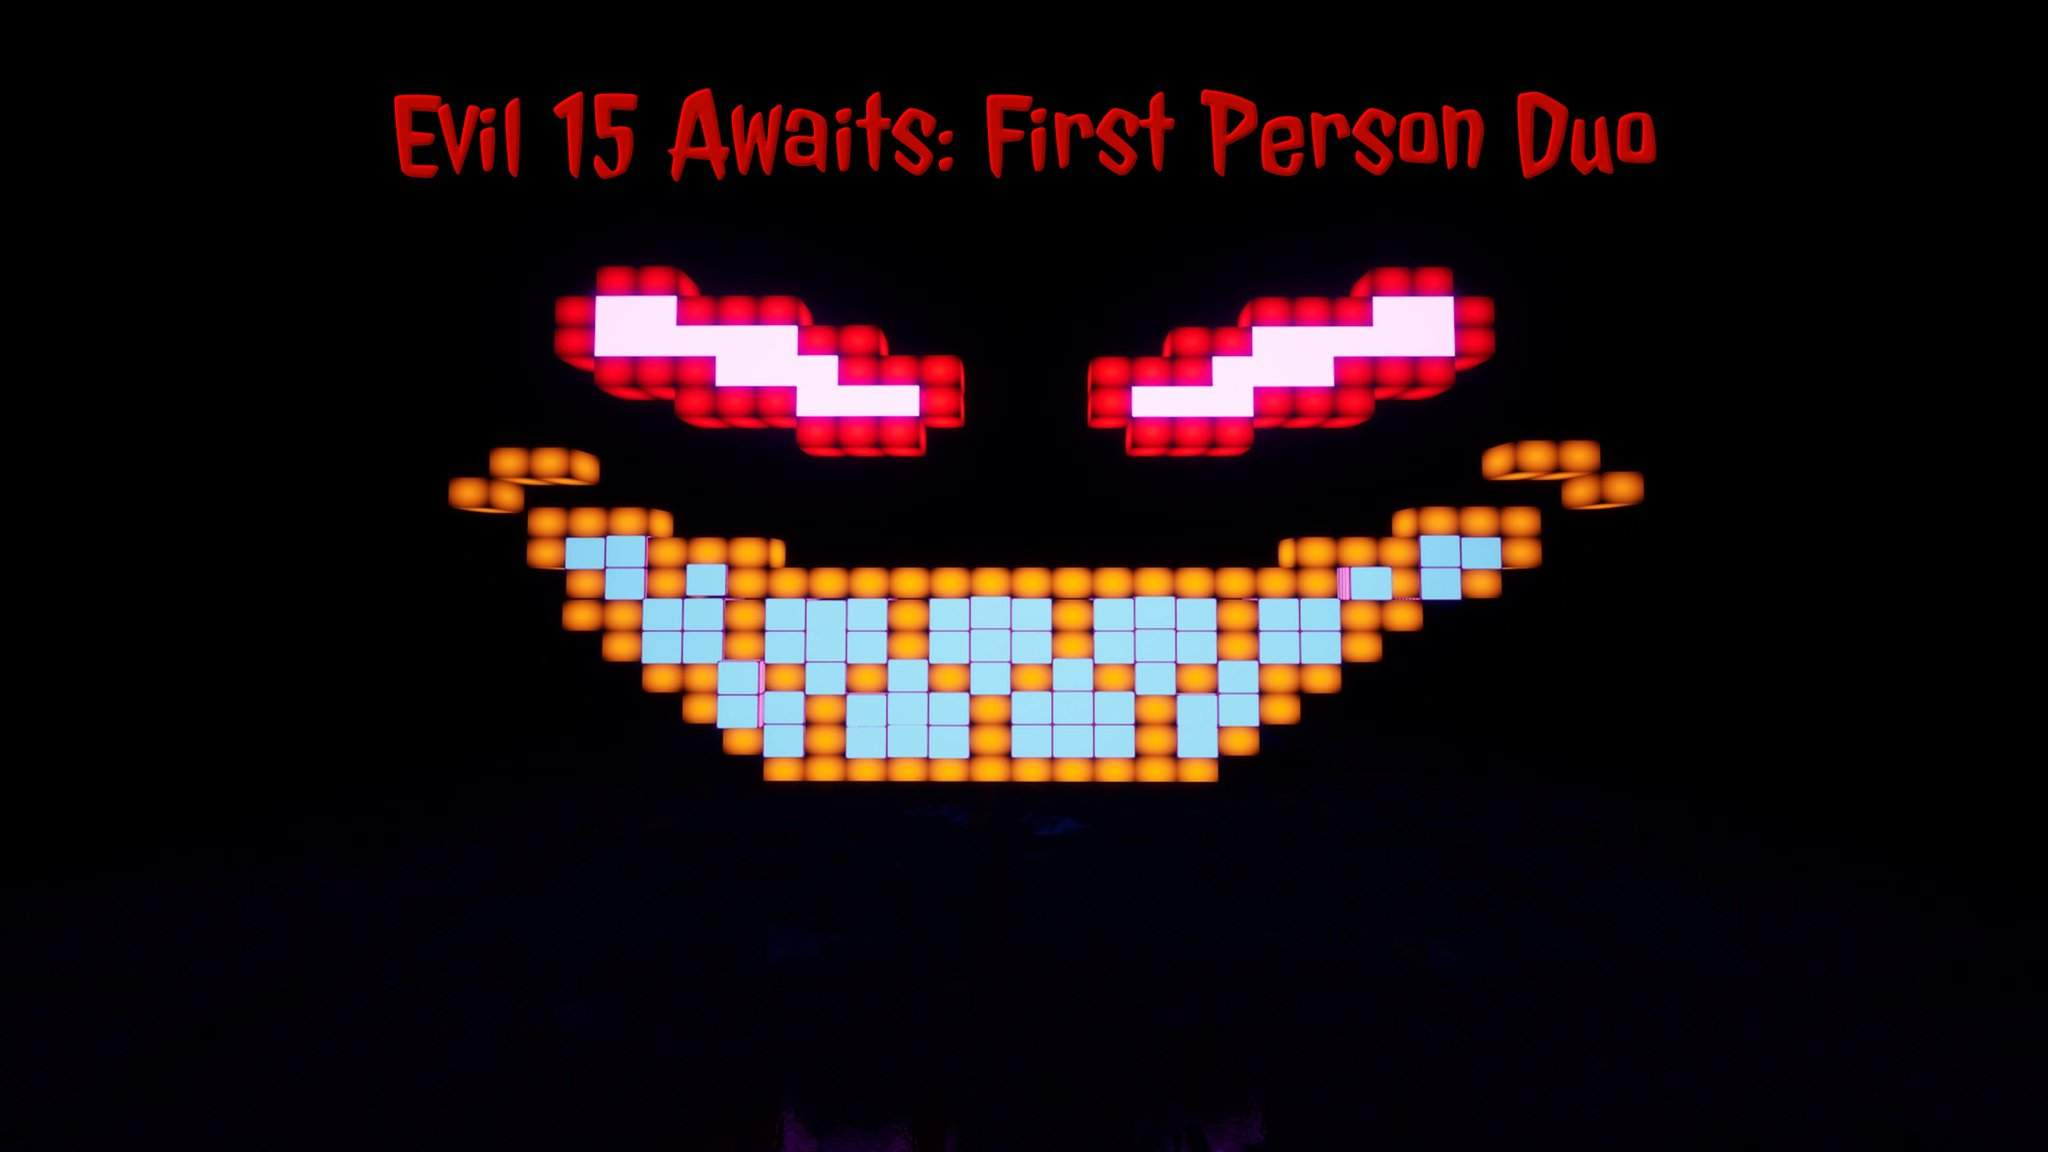 EVIL 15 AWAITS: FIRST PERSON DUO